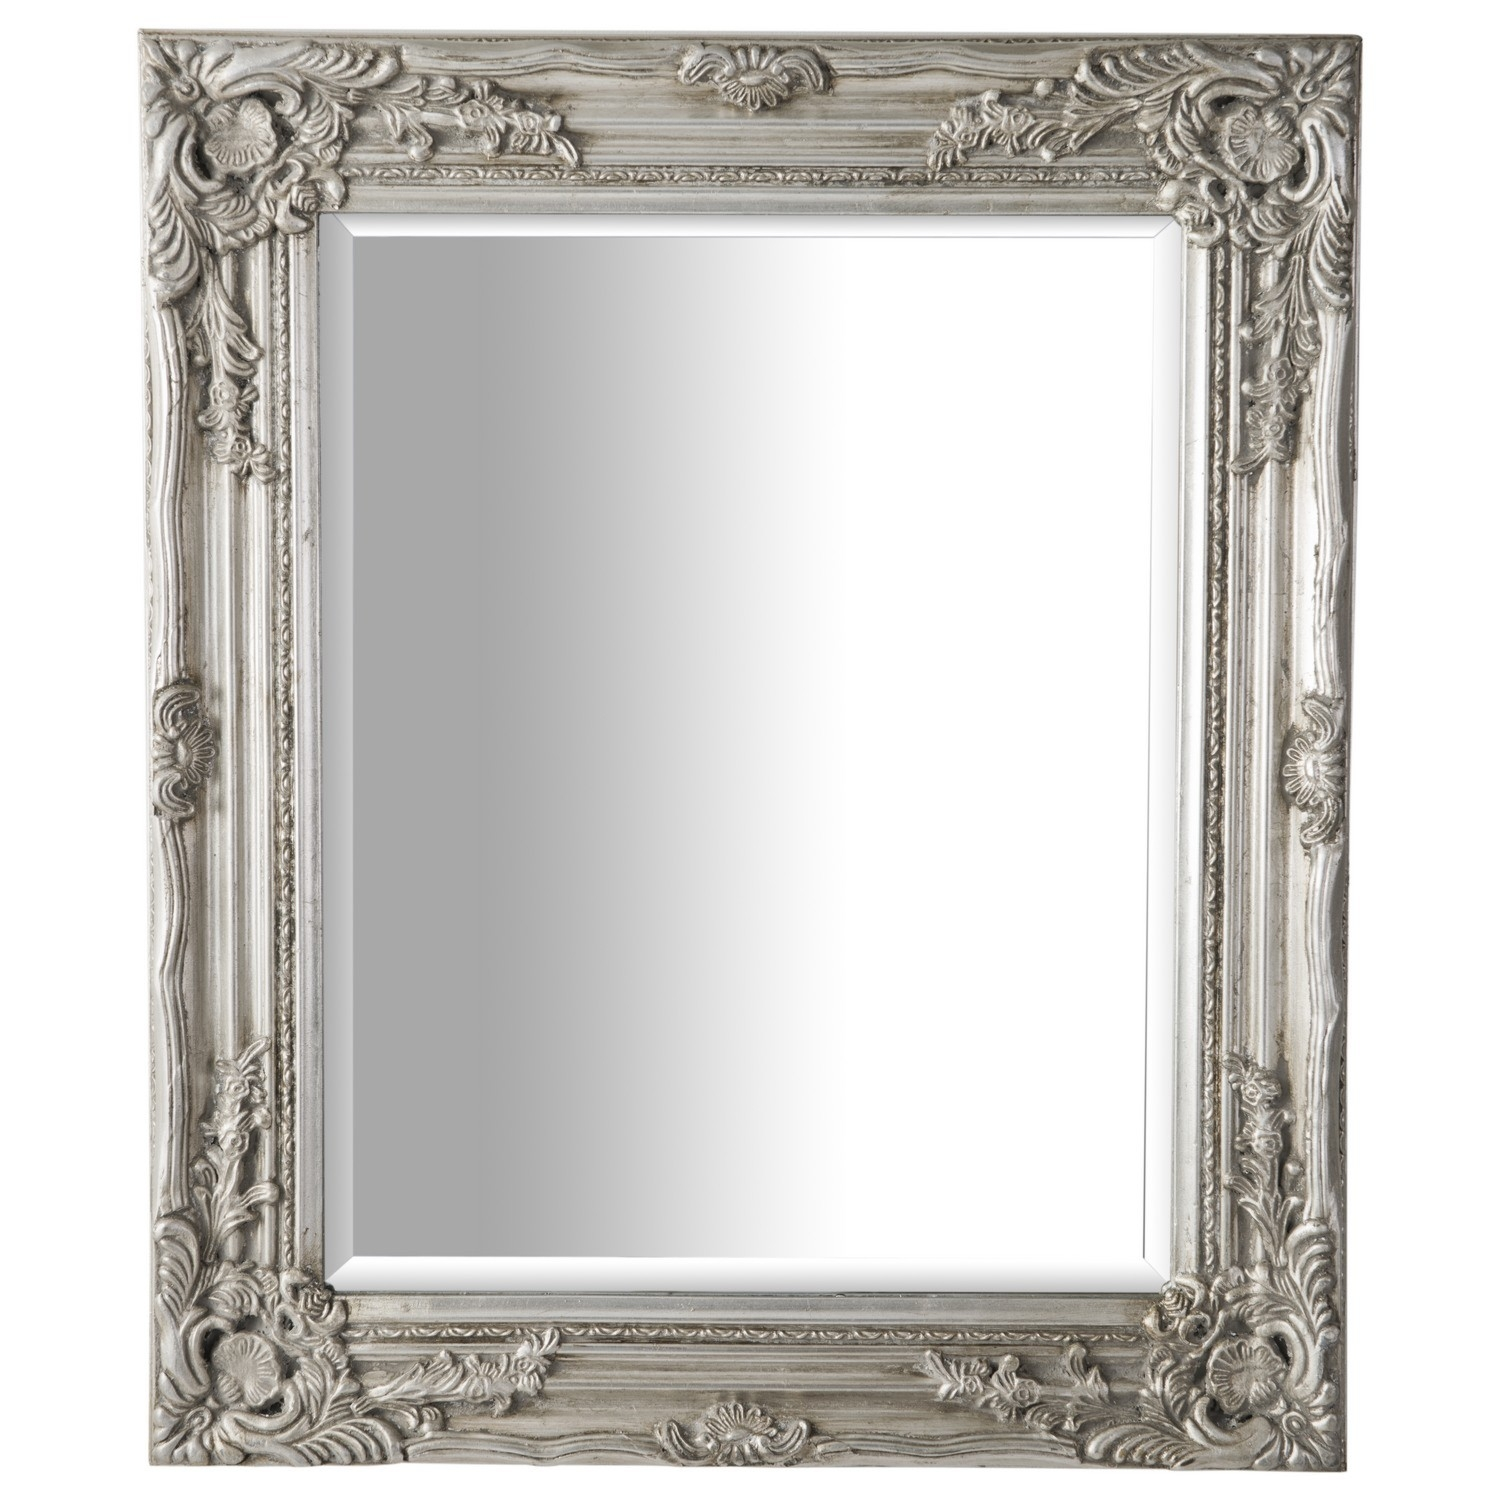 Antique Ornate Mirror Silver Pertaining To Ornate Silver Mirrors (Image 3 of 15)